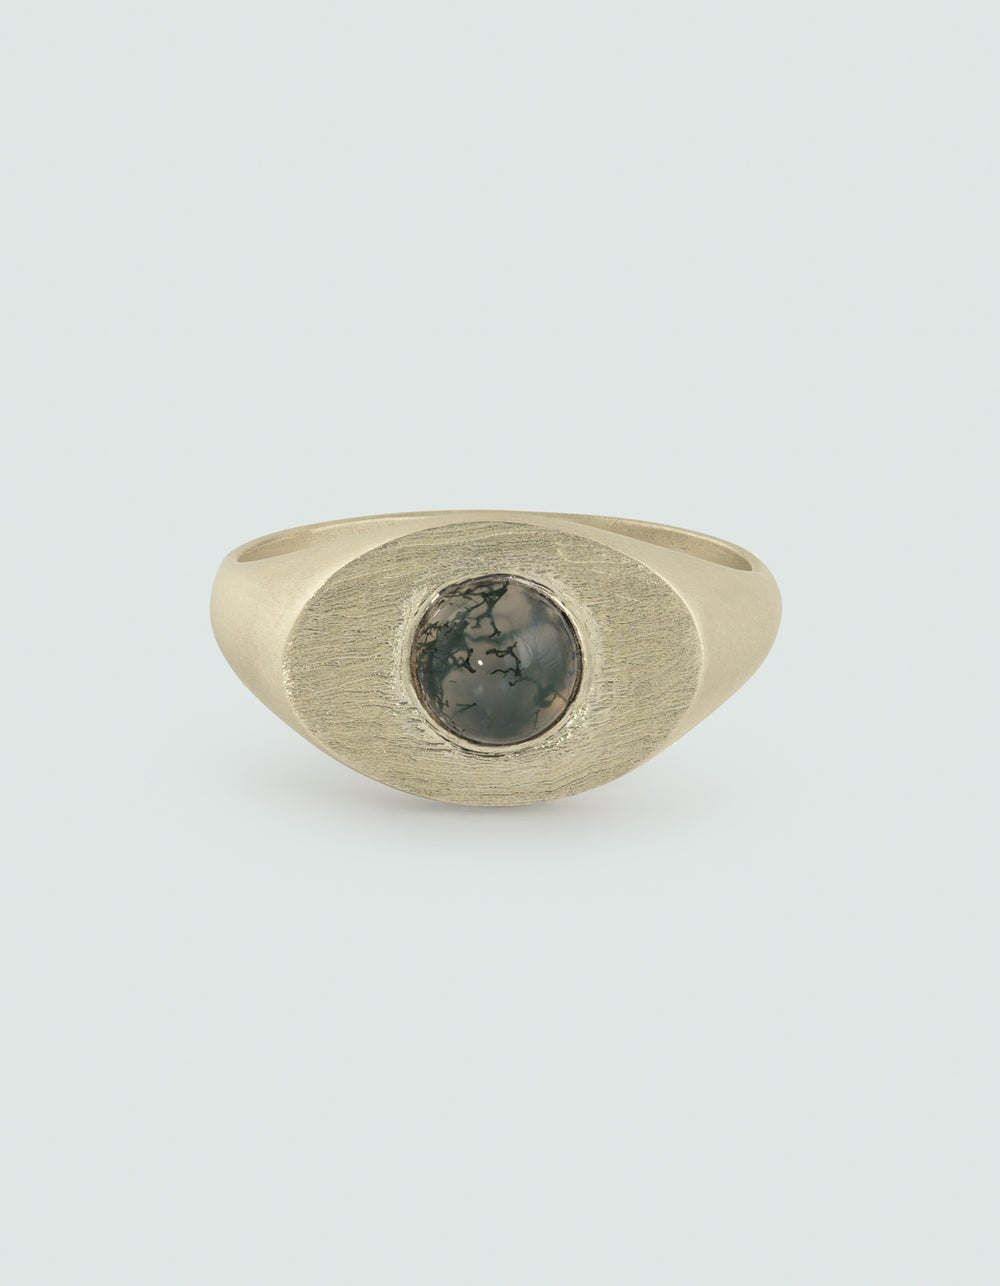 Image of 9CT SOLID YELLOW GOLD MOSS ORB RING